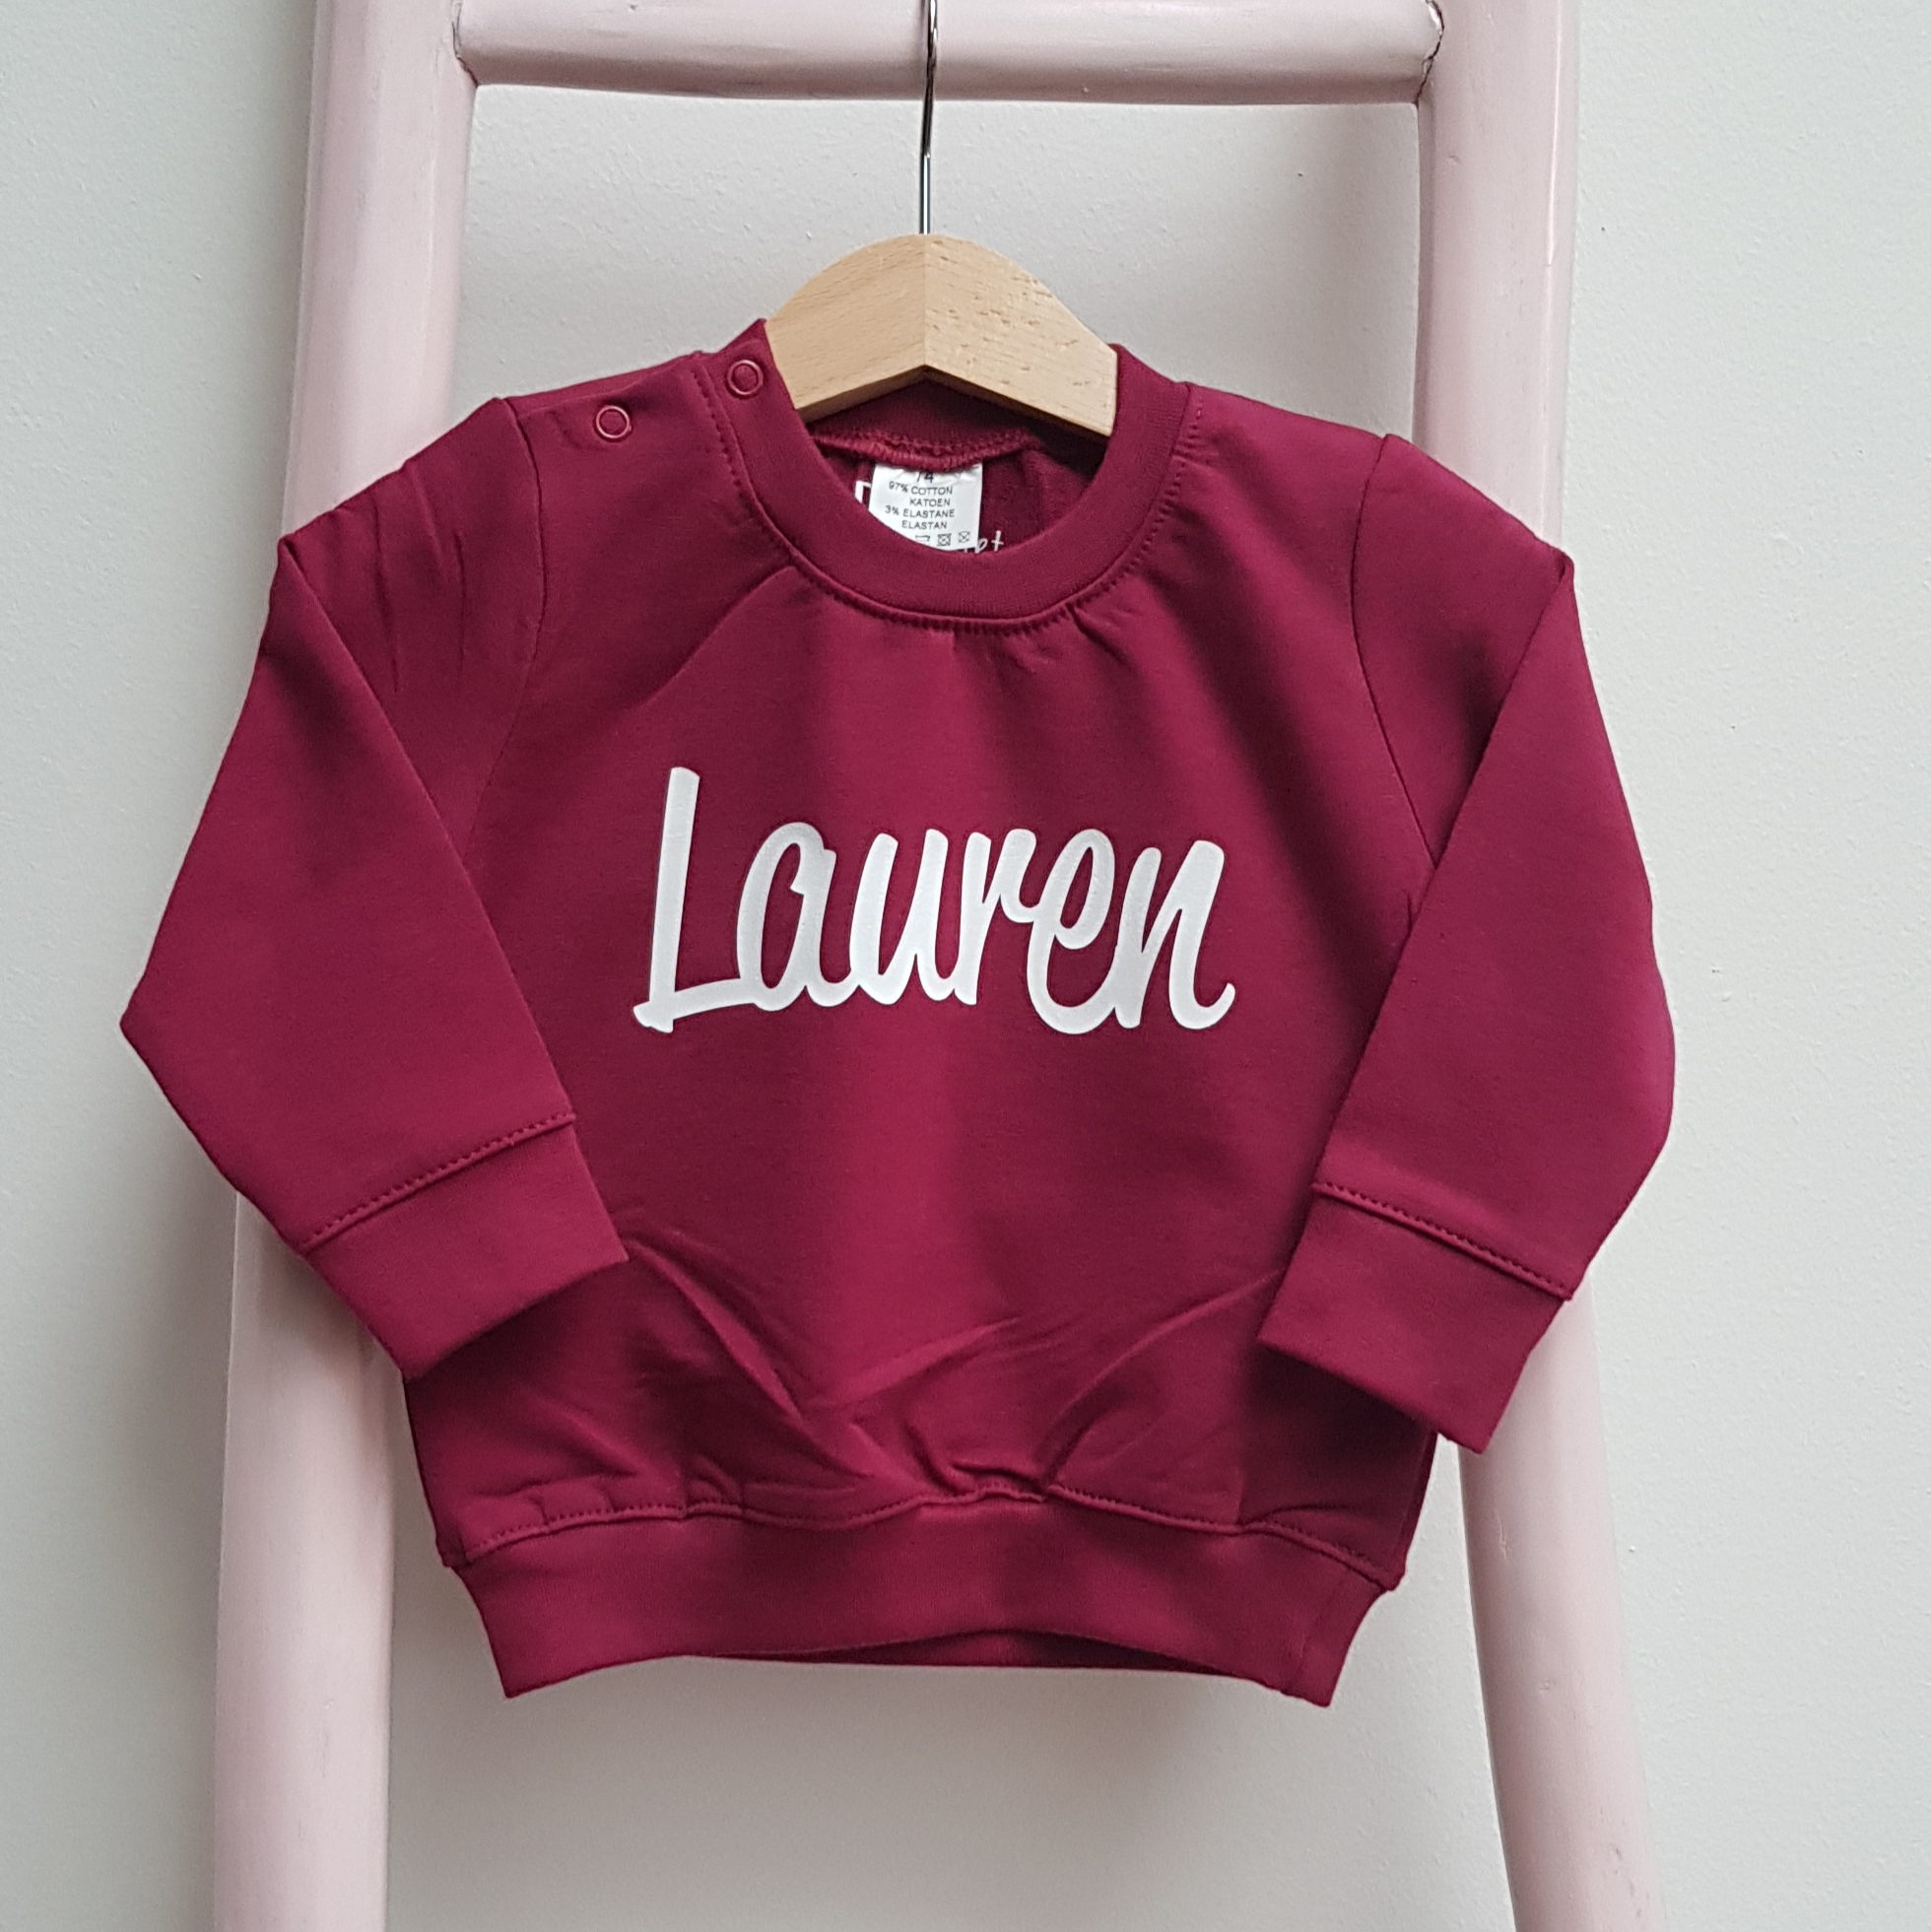 sweater baurgundy naam bordeaux rood foto